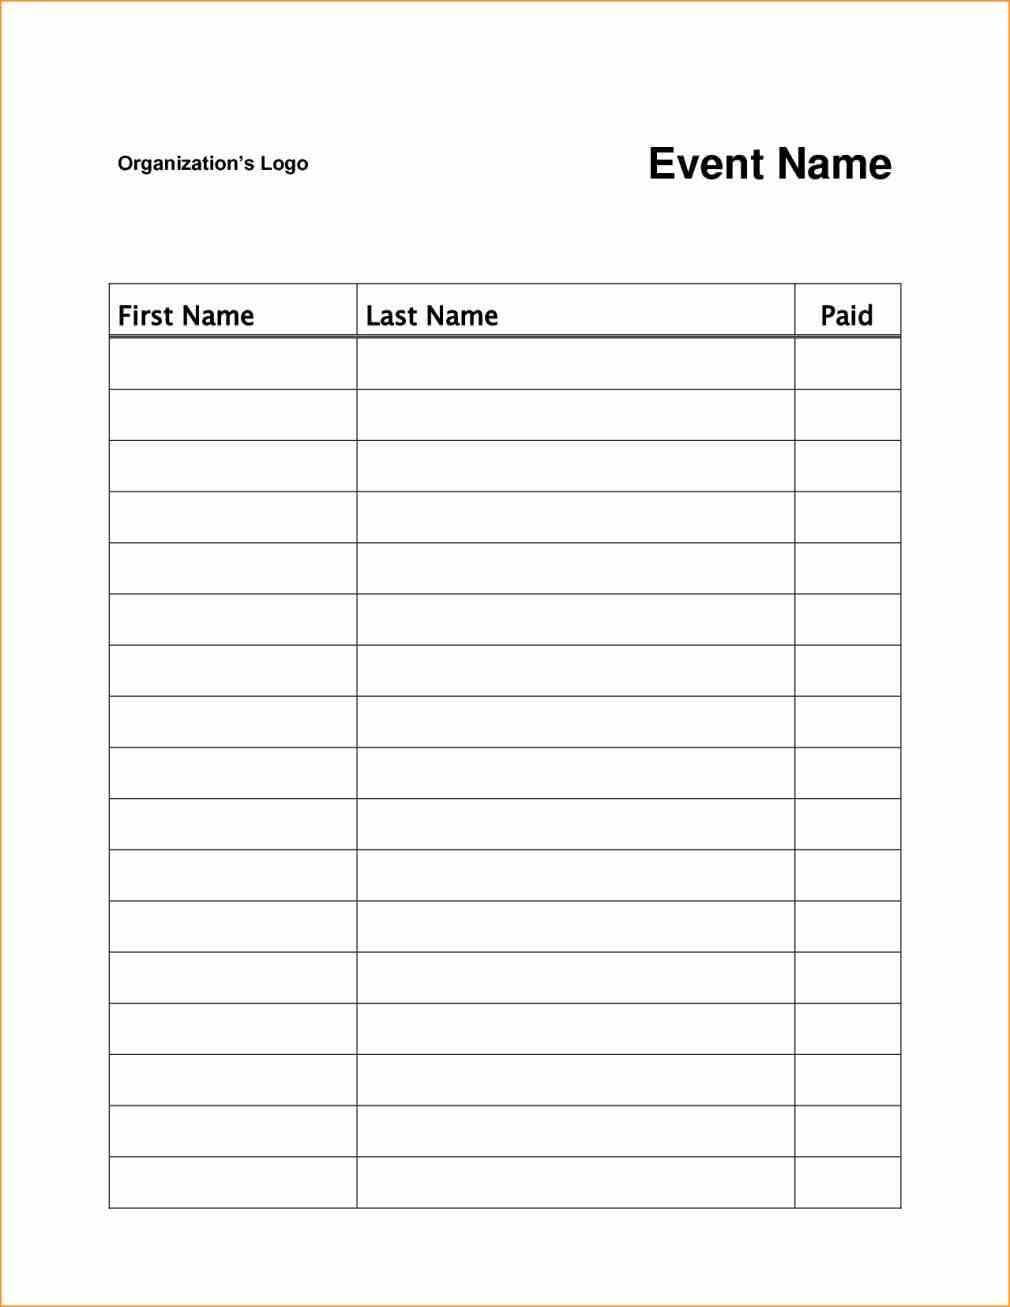 Event Or Class Workshop Forms A Sign Up Sheet Template Word with Free Sign Up Sheet Template Word